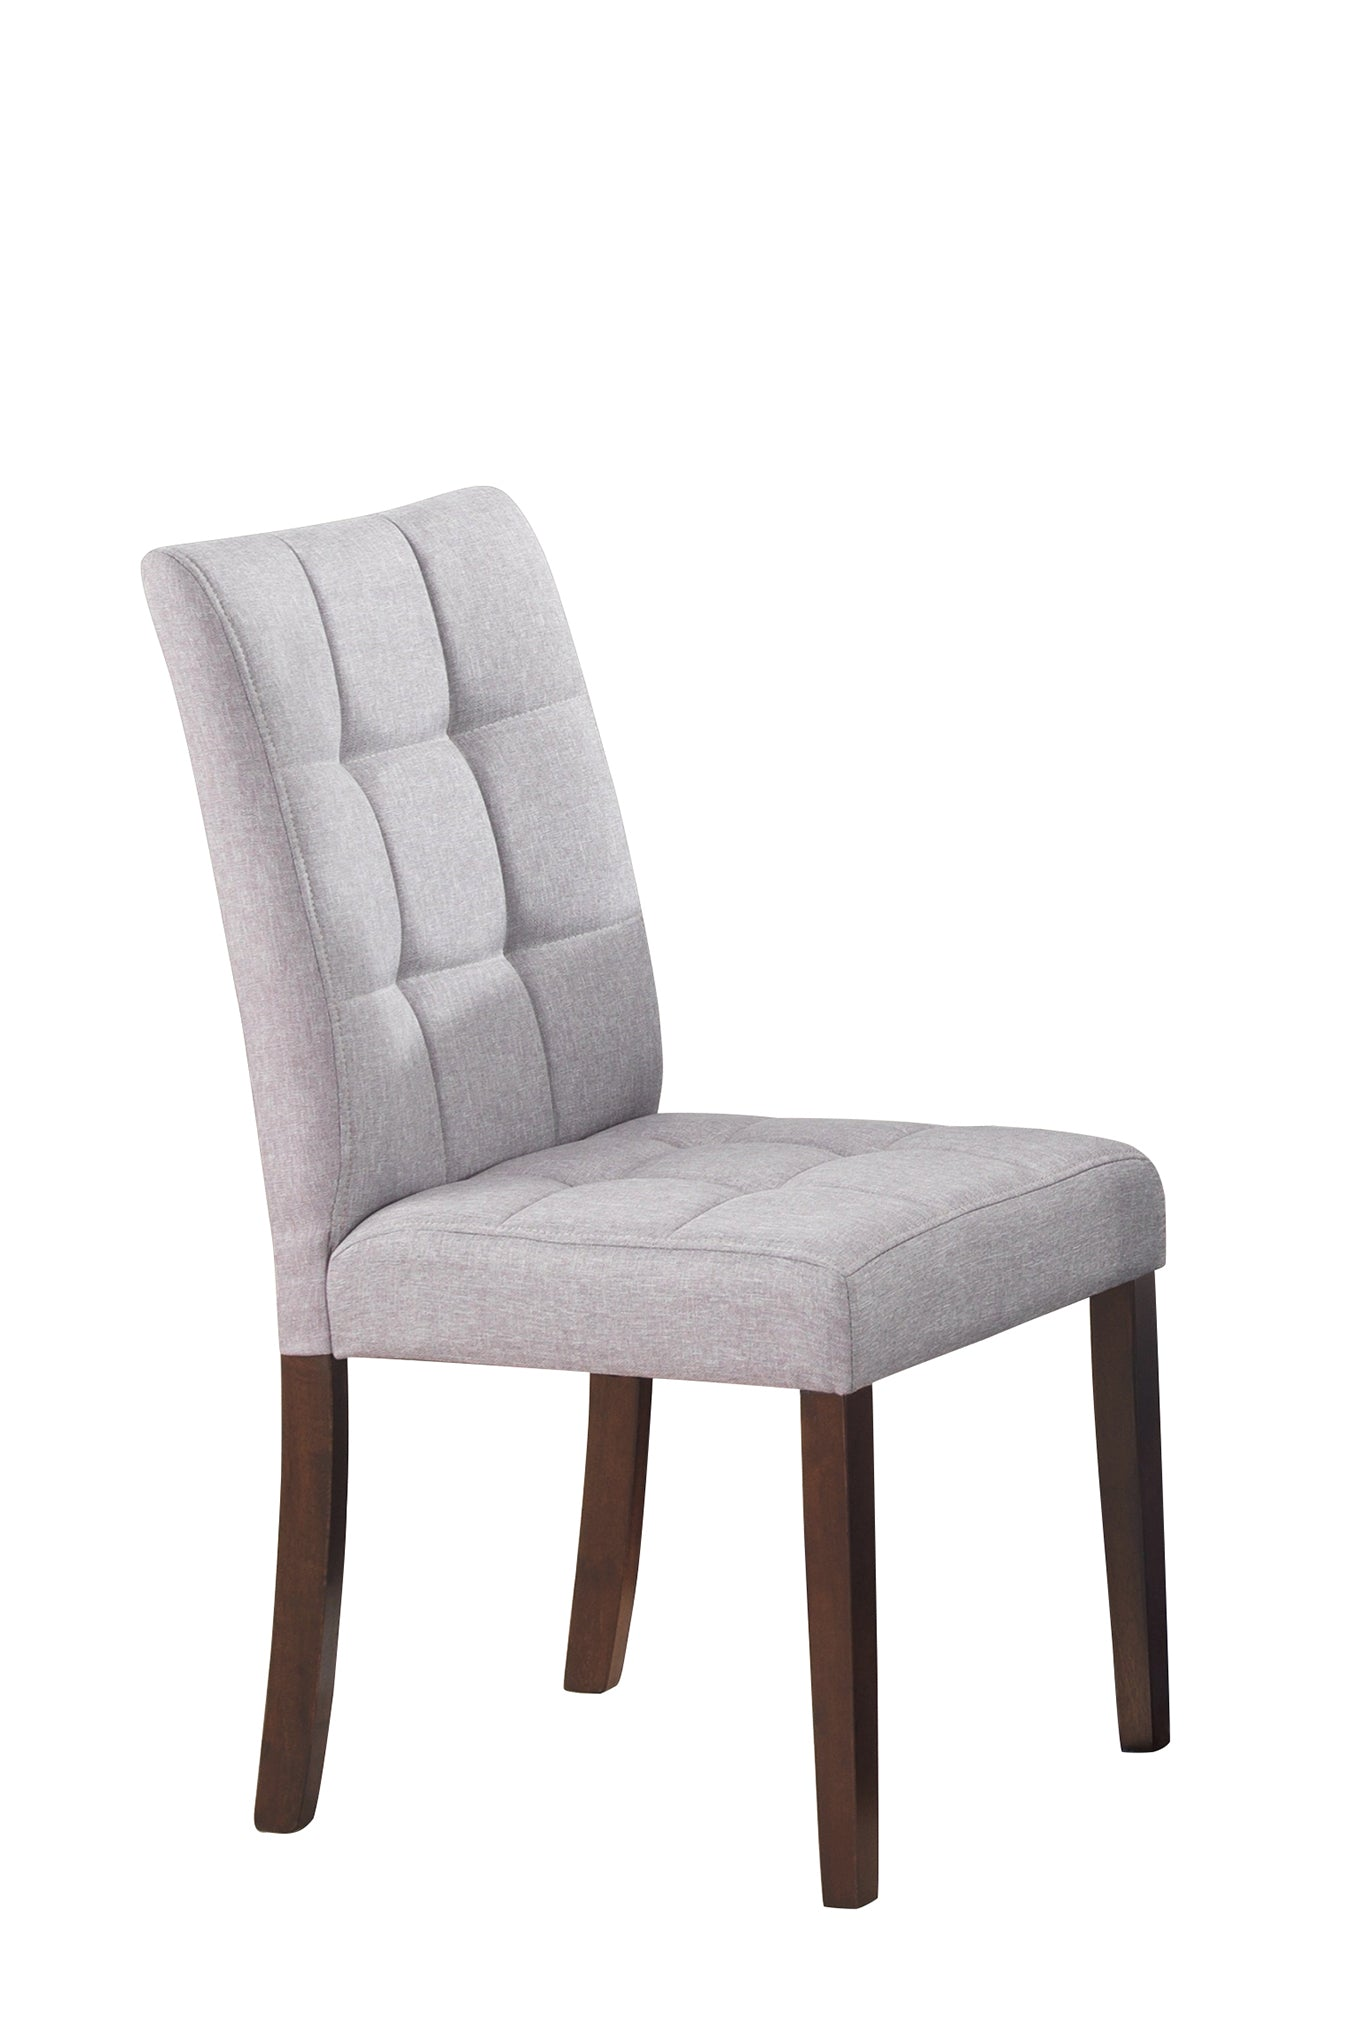 Clare Dining Chair Light Grey